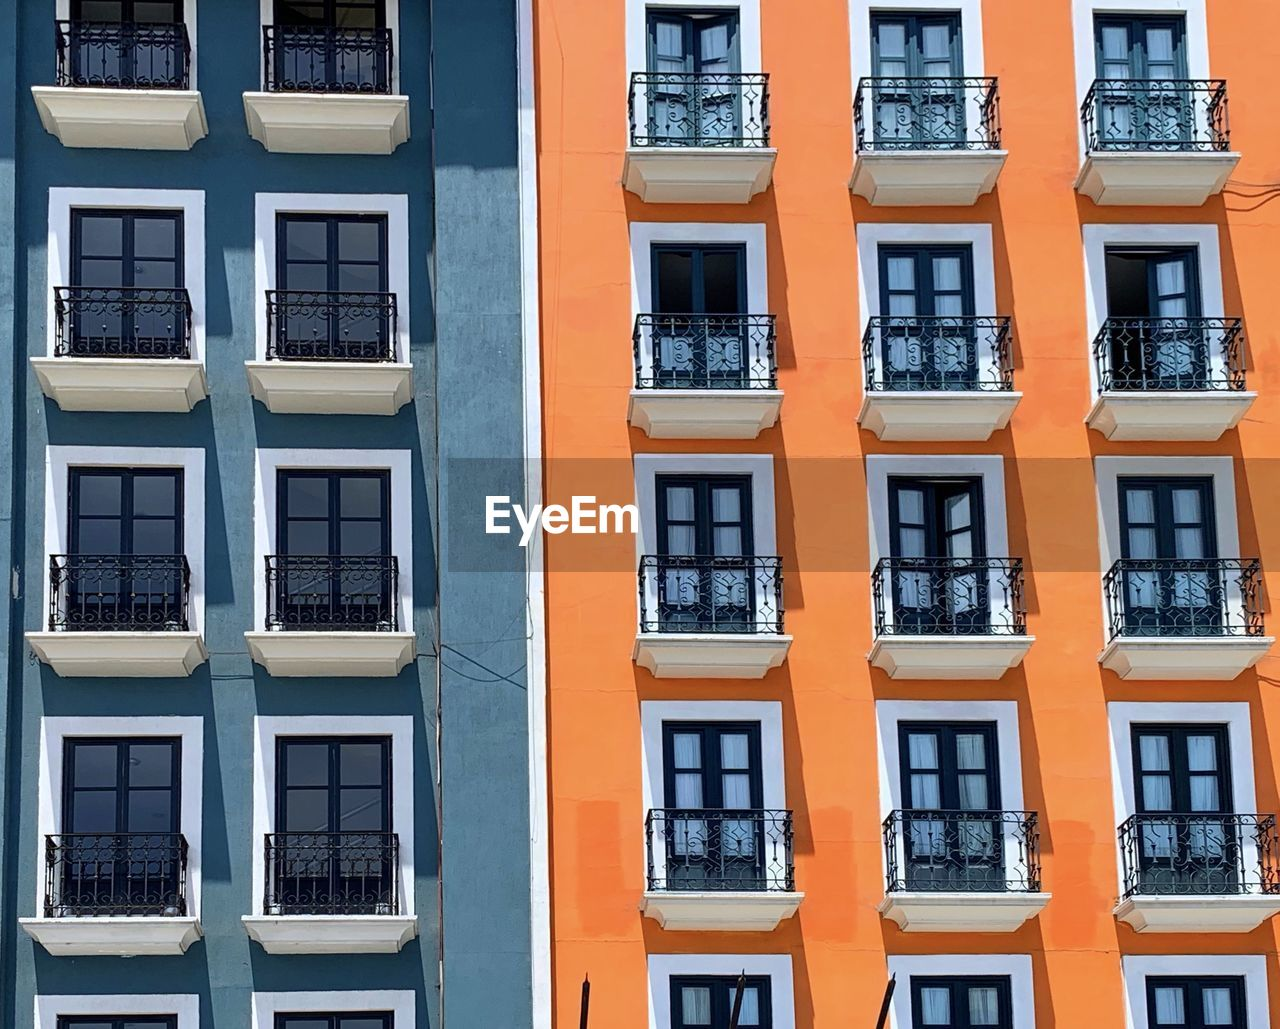 window, building exterior, built structure, full frame, architecture, building, residential district, backgrounds, no people, day, side by side, orange color, outdoors, glass - material, city, sunlight, in a row, low angle view, balcony, pattern, apartment, row house